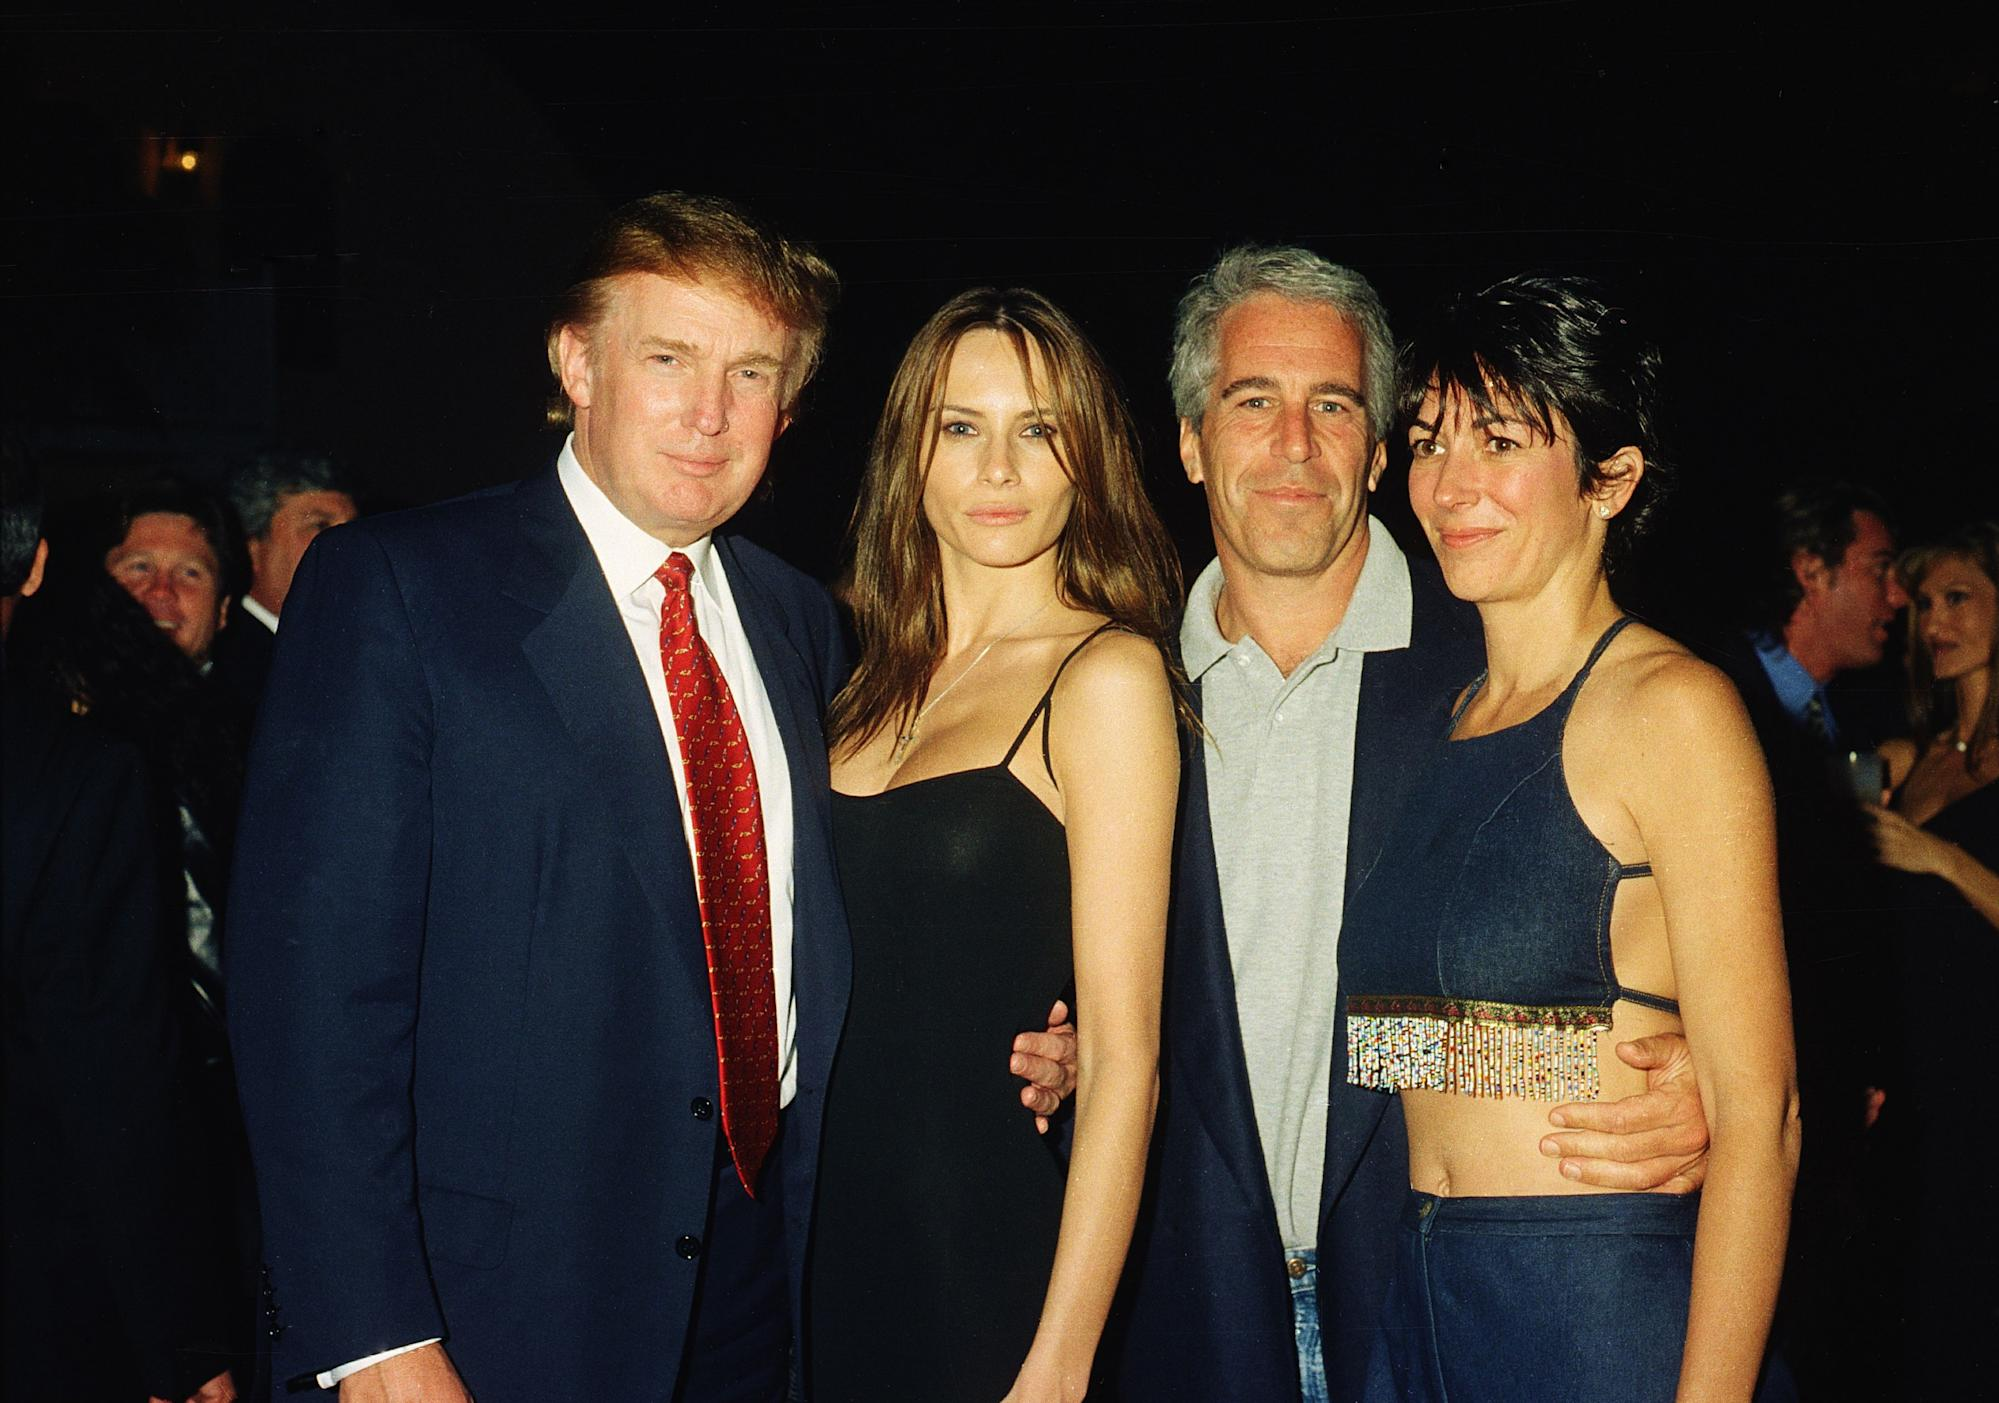 Apollo CEO Leon Black is one of many business figures with ties to Jeffrey Epstein